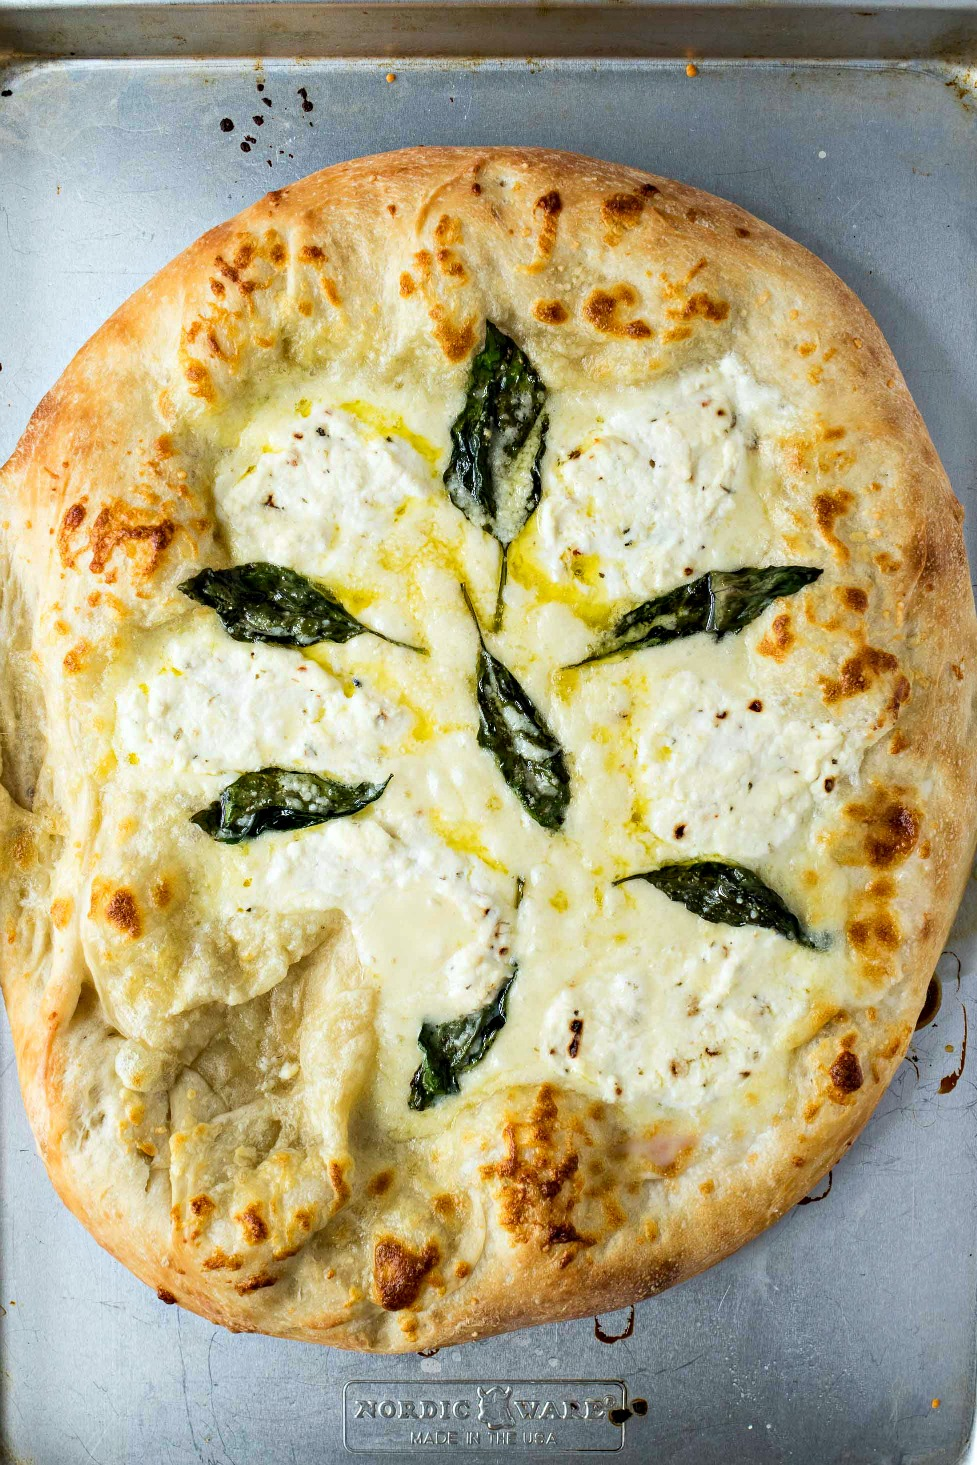 The Best Pizza Bianca (White Pizza) - The BEST white pizza you will ever make! Made with store-bought dough, shredded mozzarella cheese, ricotta cheese, and Pecorino Romano cheese, this pizza is super simple to make and will be best addition to your weeknight dinners.